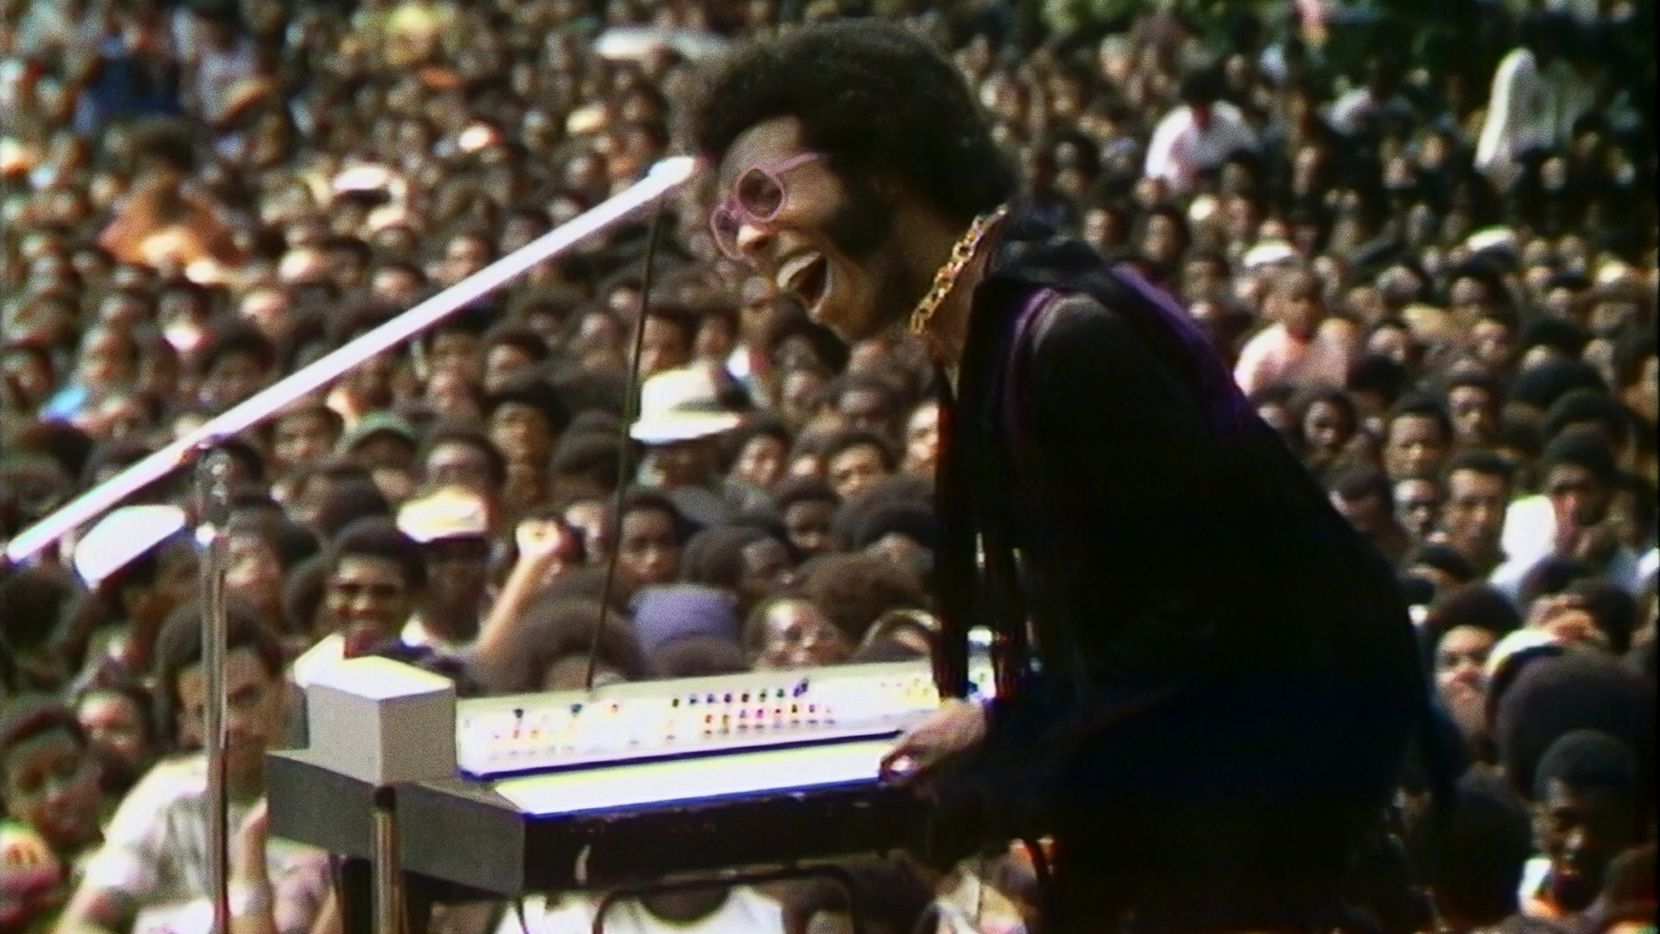 """Denton native Sly Stone steals the show in """"Summer of Soul (…Or, When the Revolution Could Not Be Televised),"""" Questlove's documentary about the 1969 Harlem Cultural Festival."""